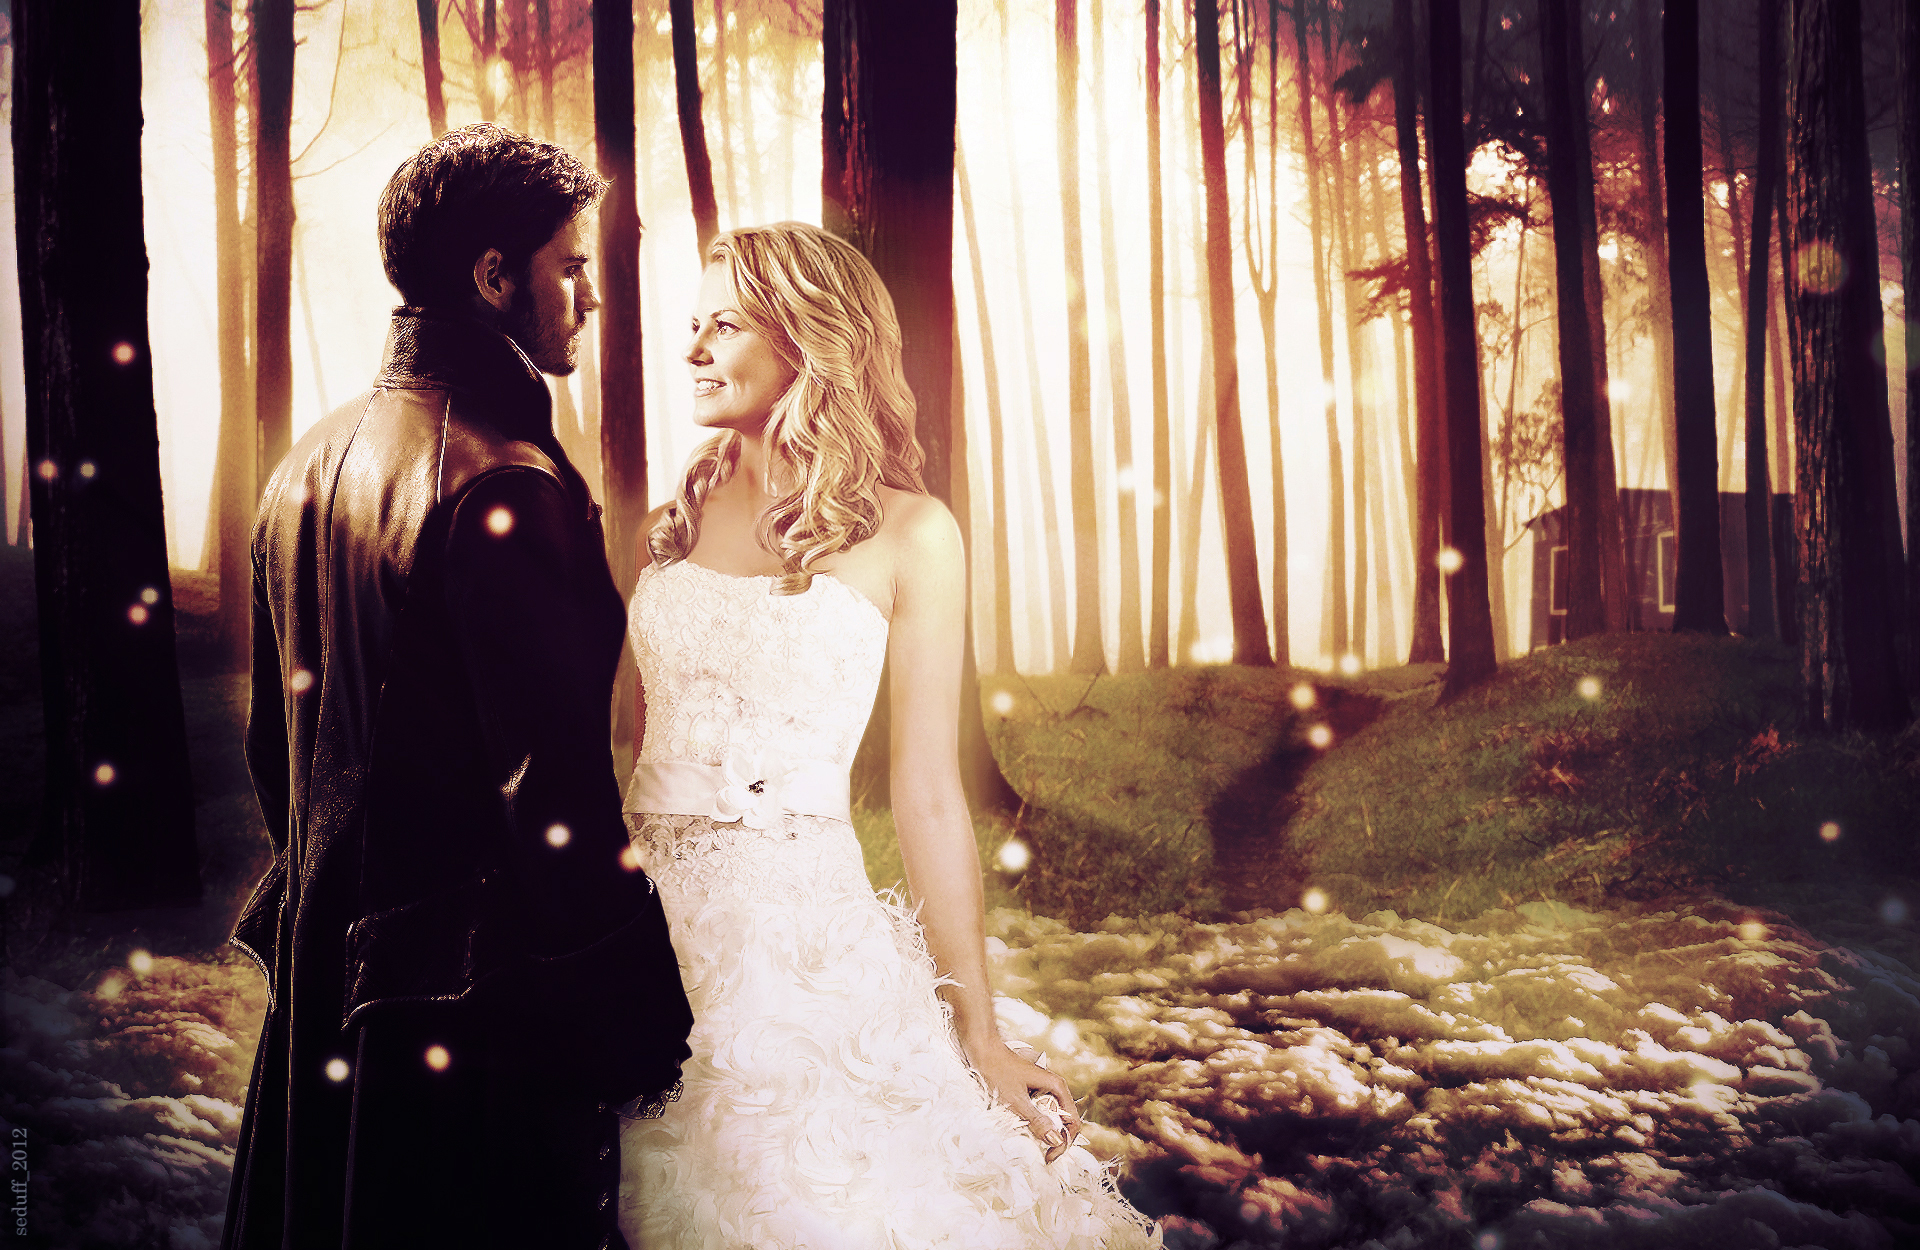 Hook & Emma (Captain Swan) Second_star_to_the_right___captain_swan_by_seduff_stuff-d5nyu0o